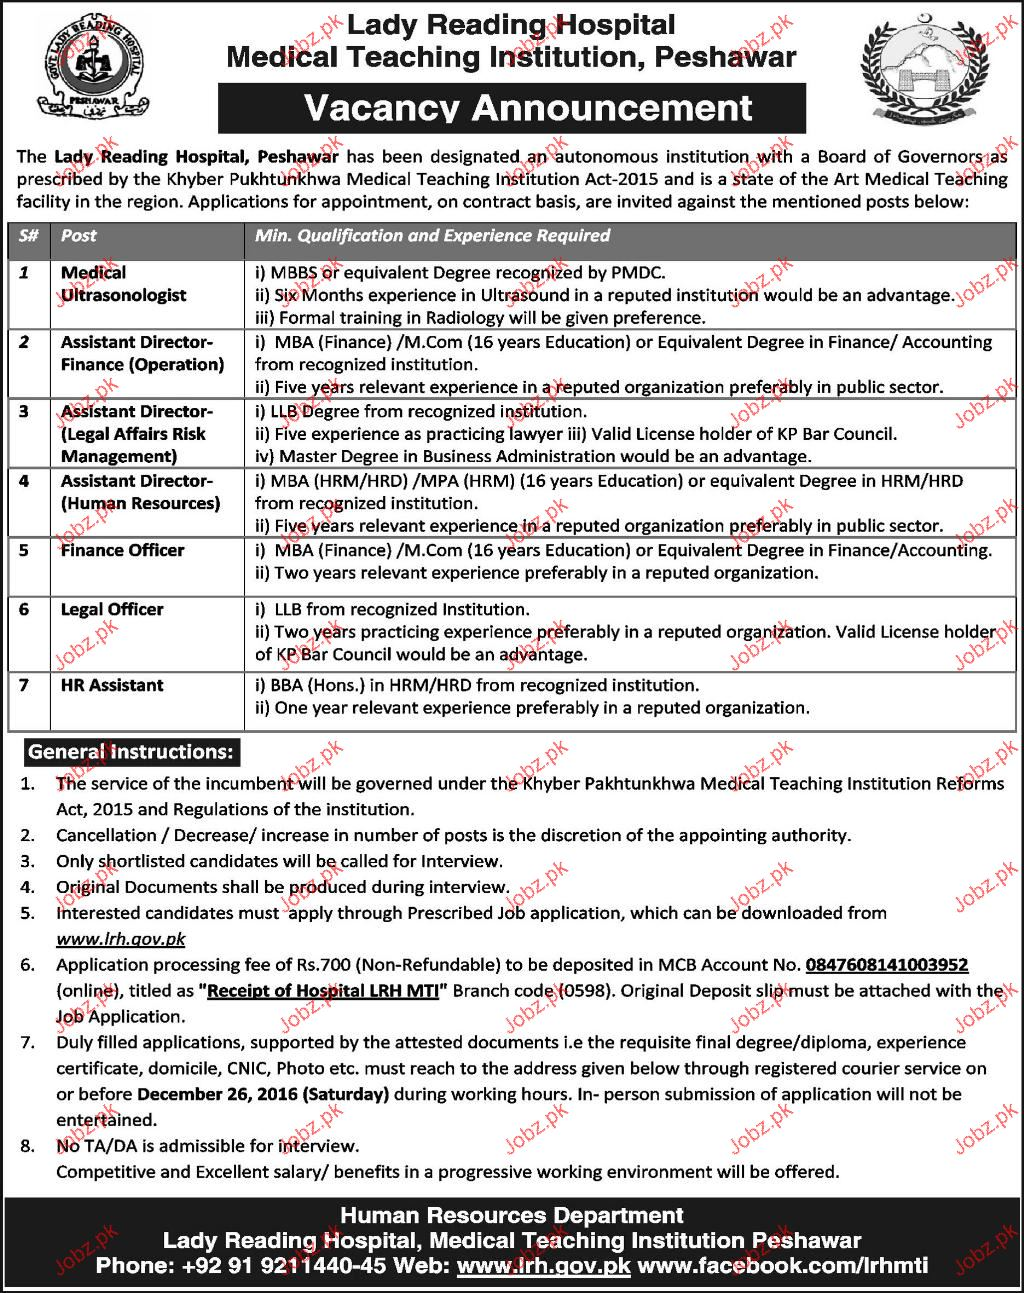 Medical Ultrasonologists, Assistant Director Job Opportunity